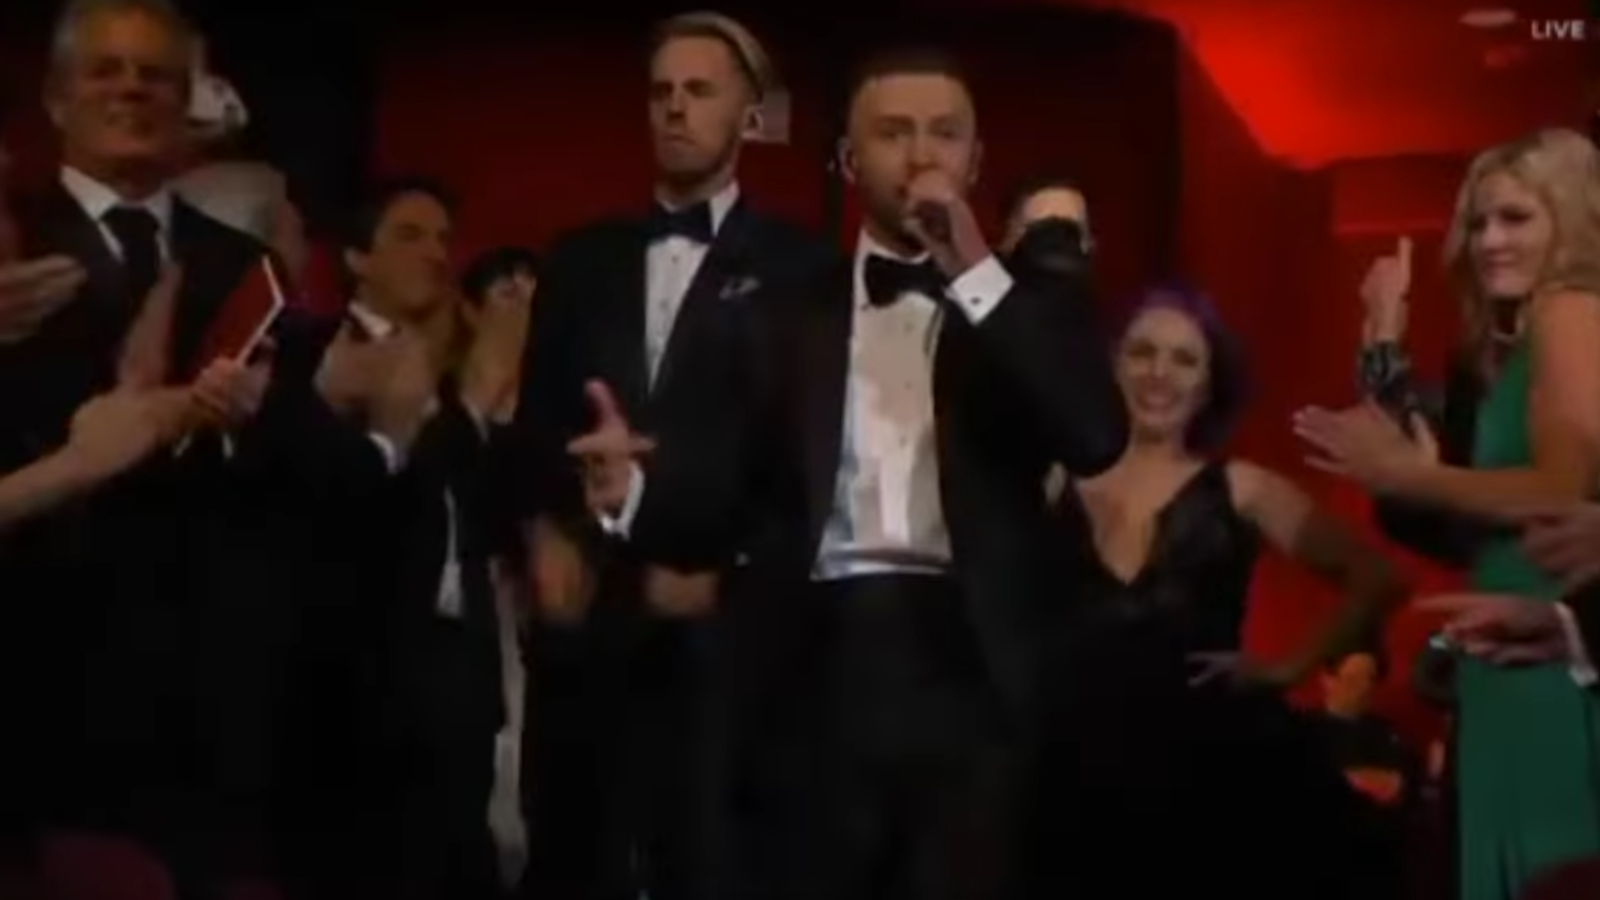 'Can't stop the feeling' de Justin Timberlake (Oscars 2017)